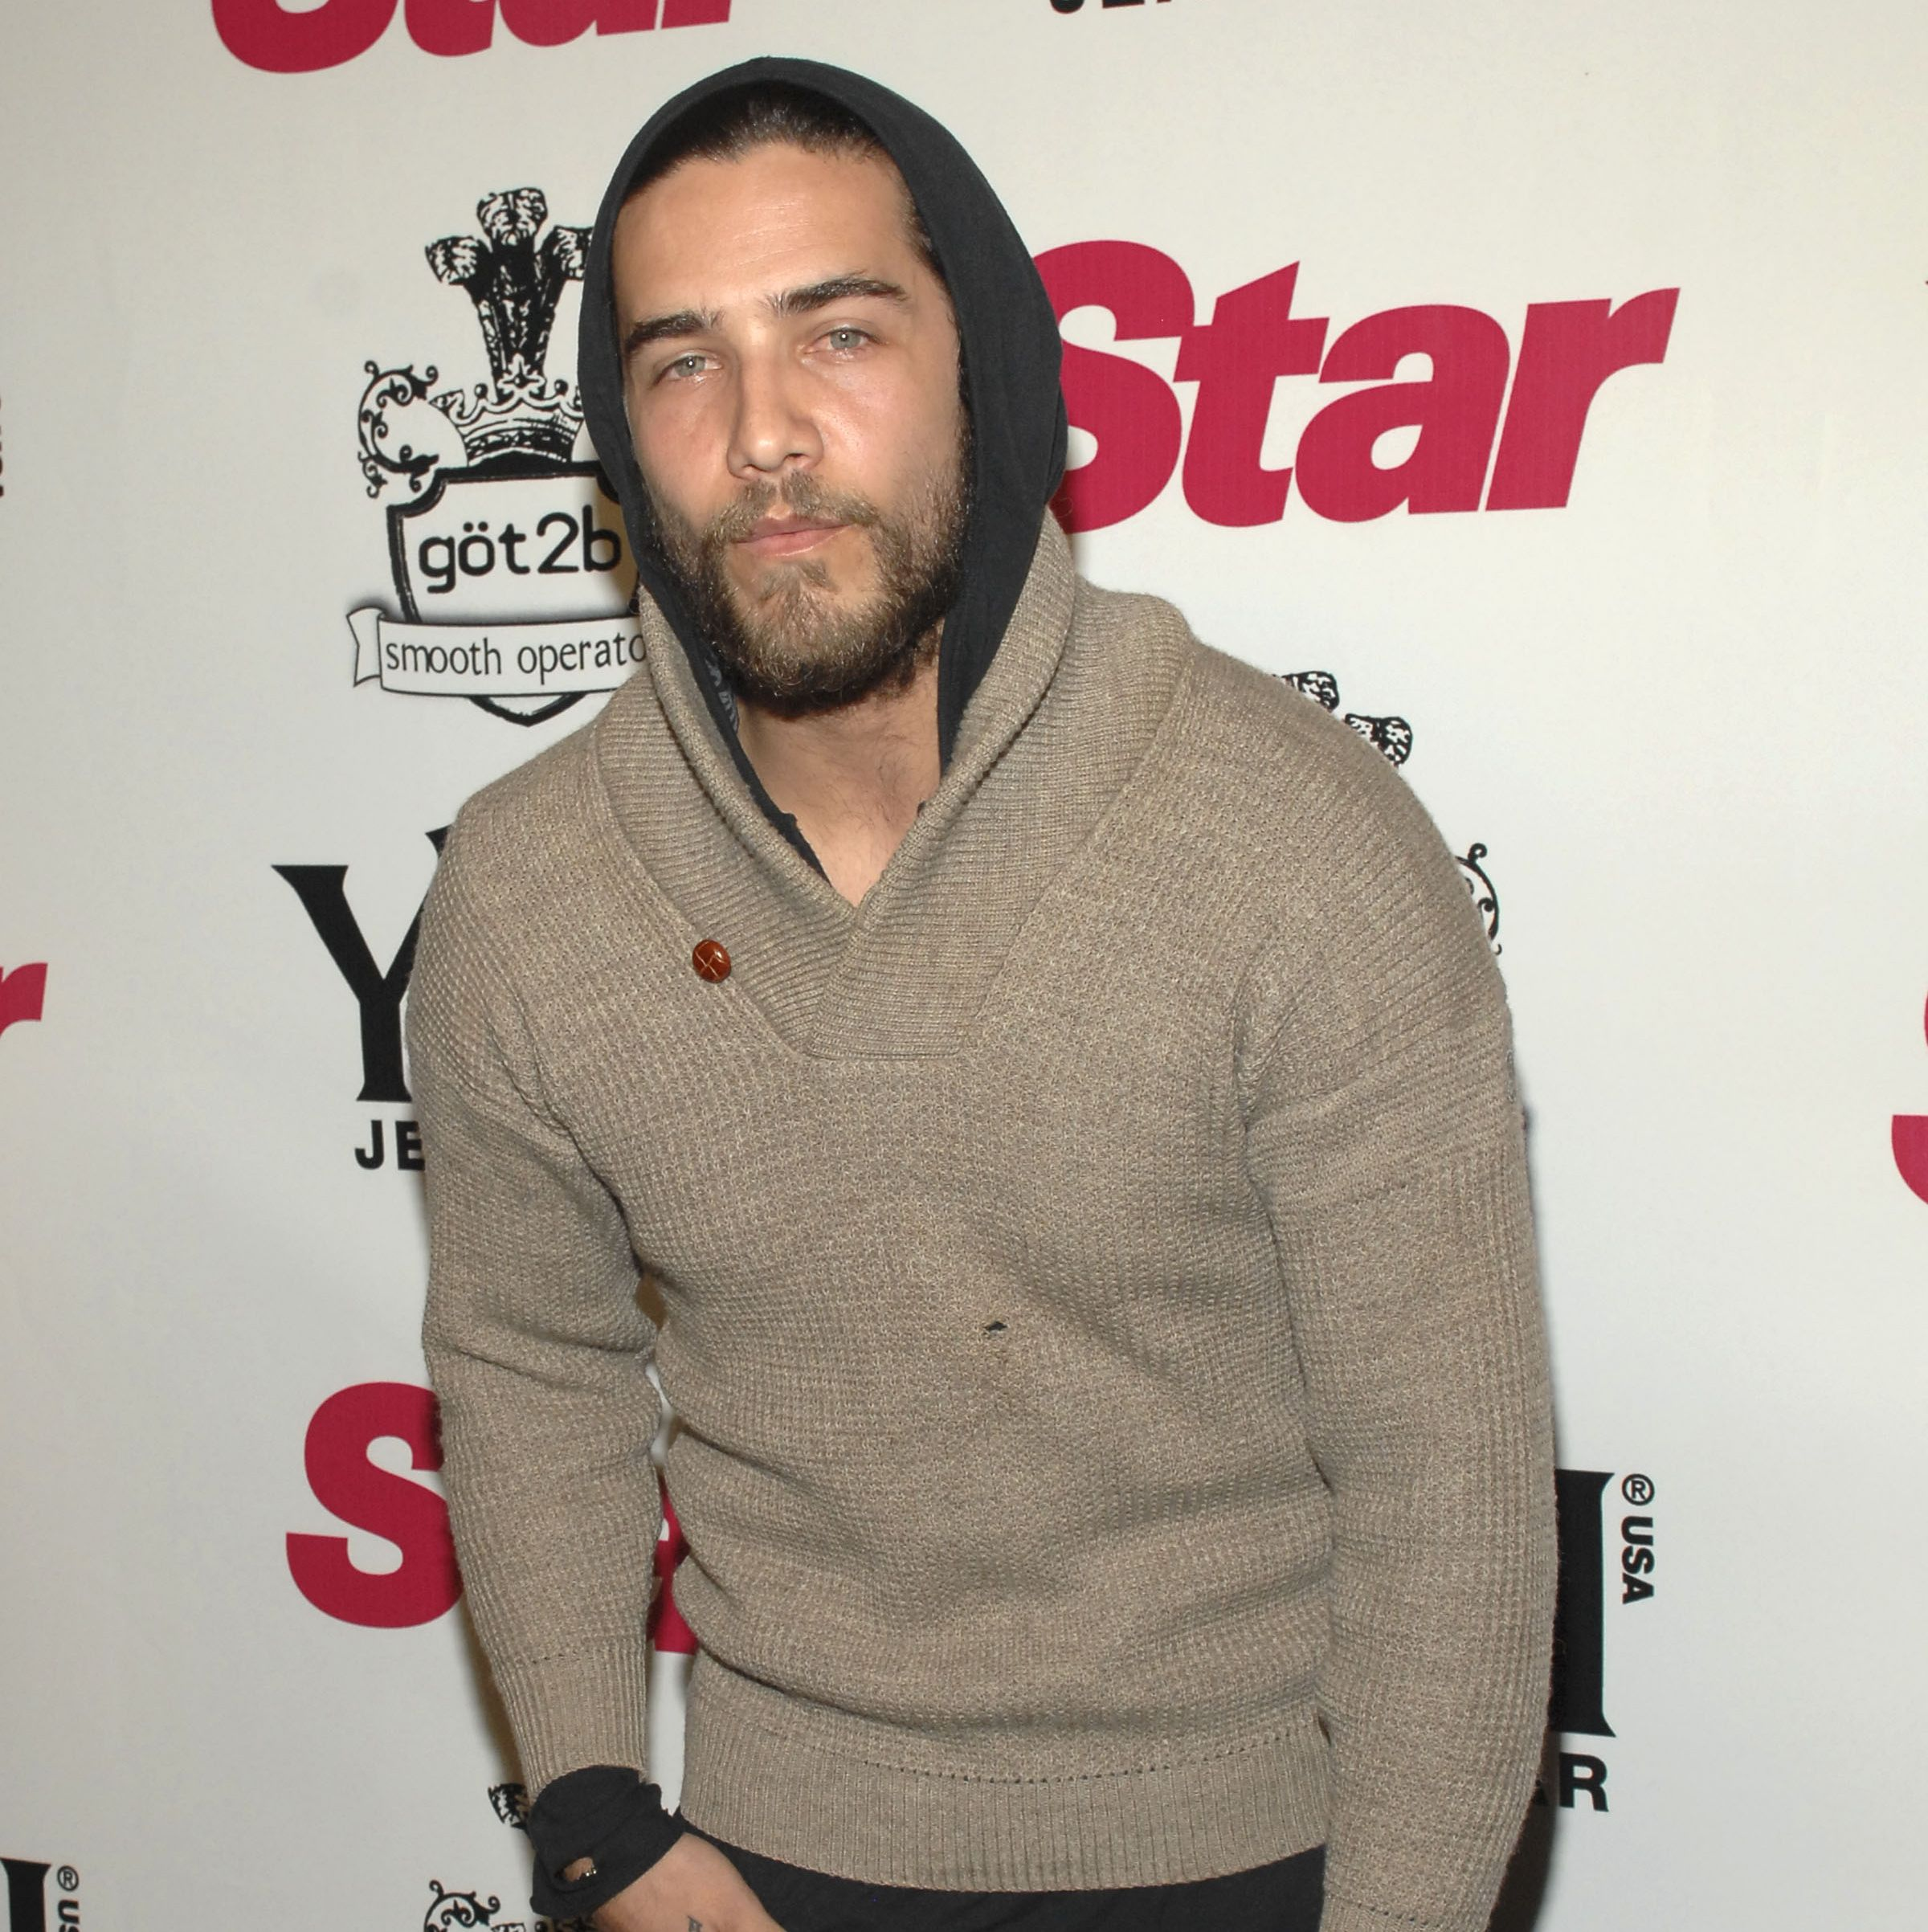 Where Has Justin Bobby Been Since 'The Hills'?